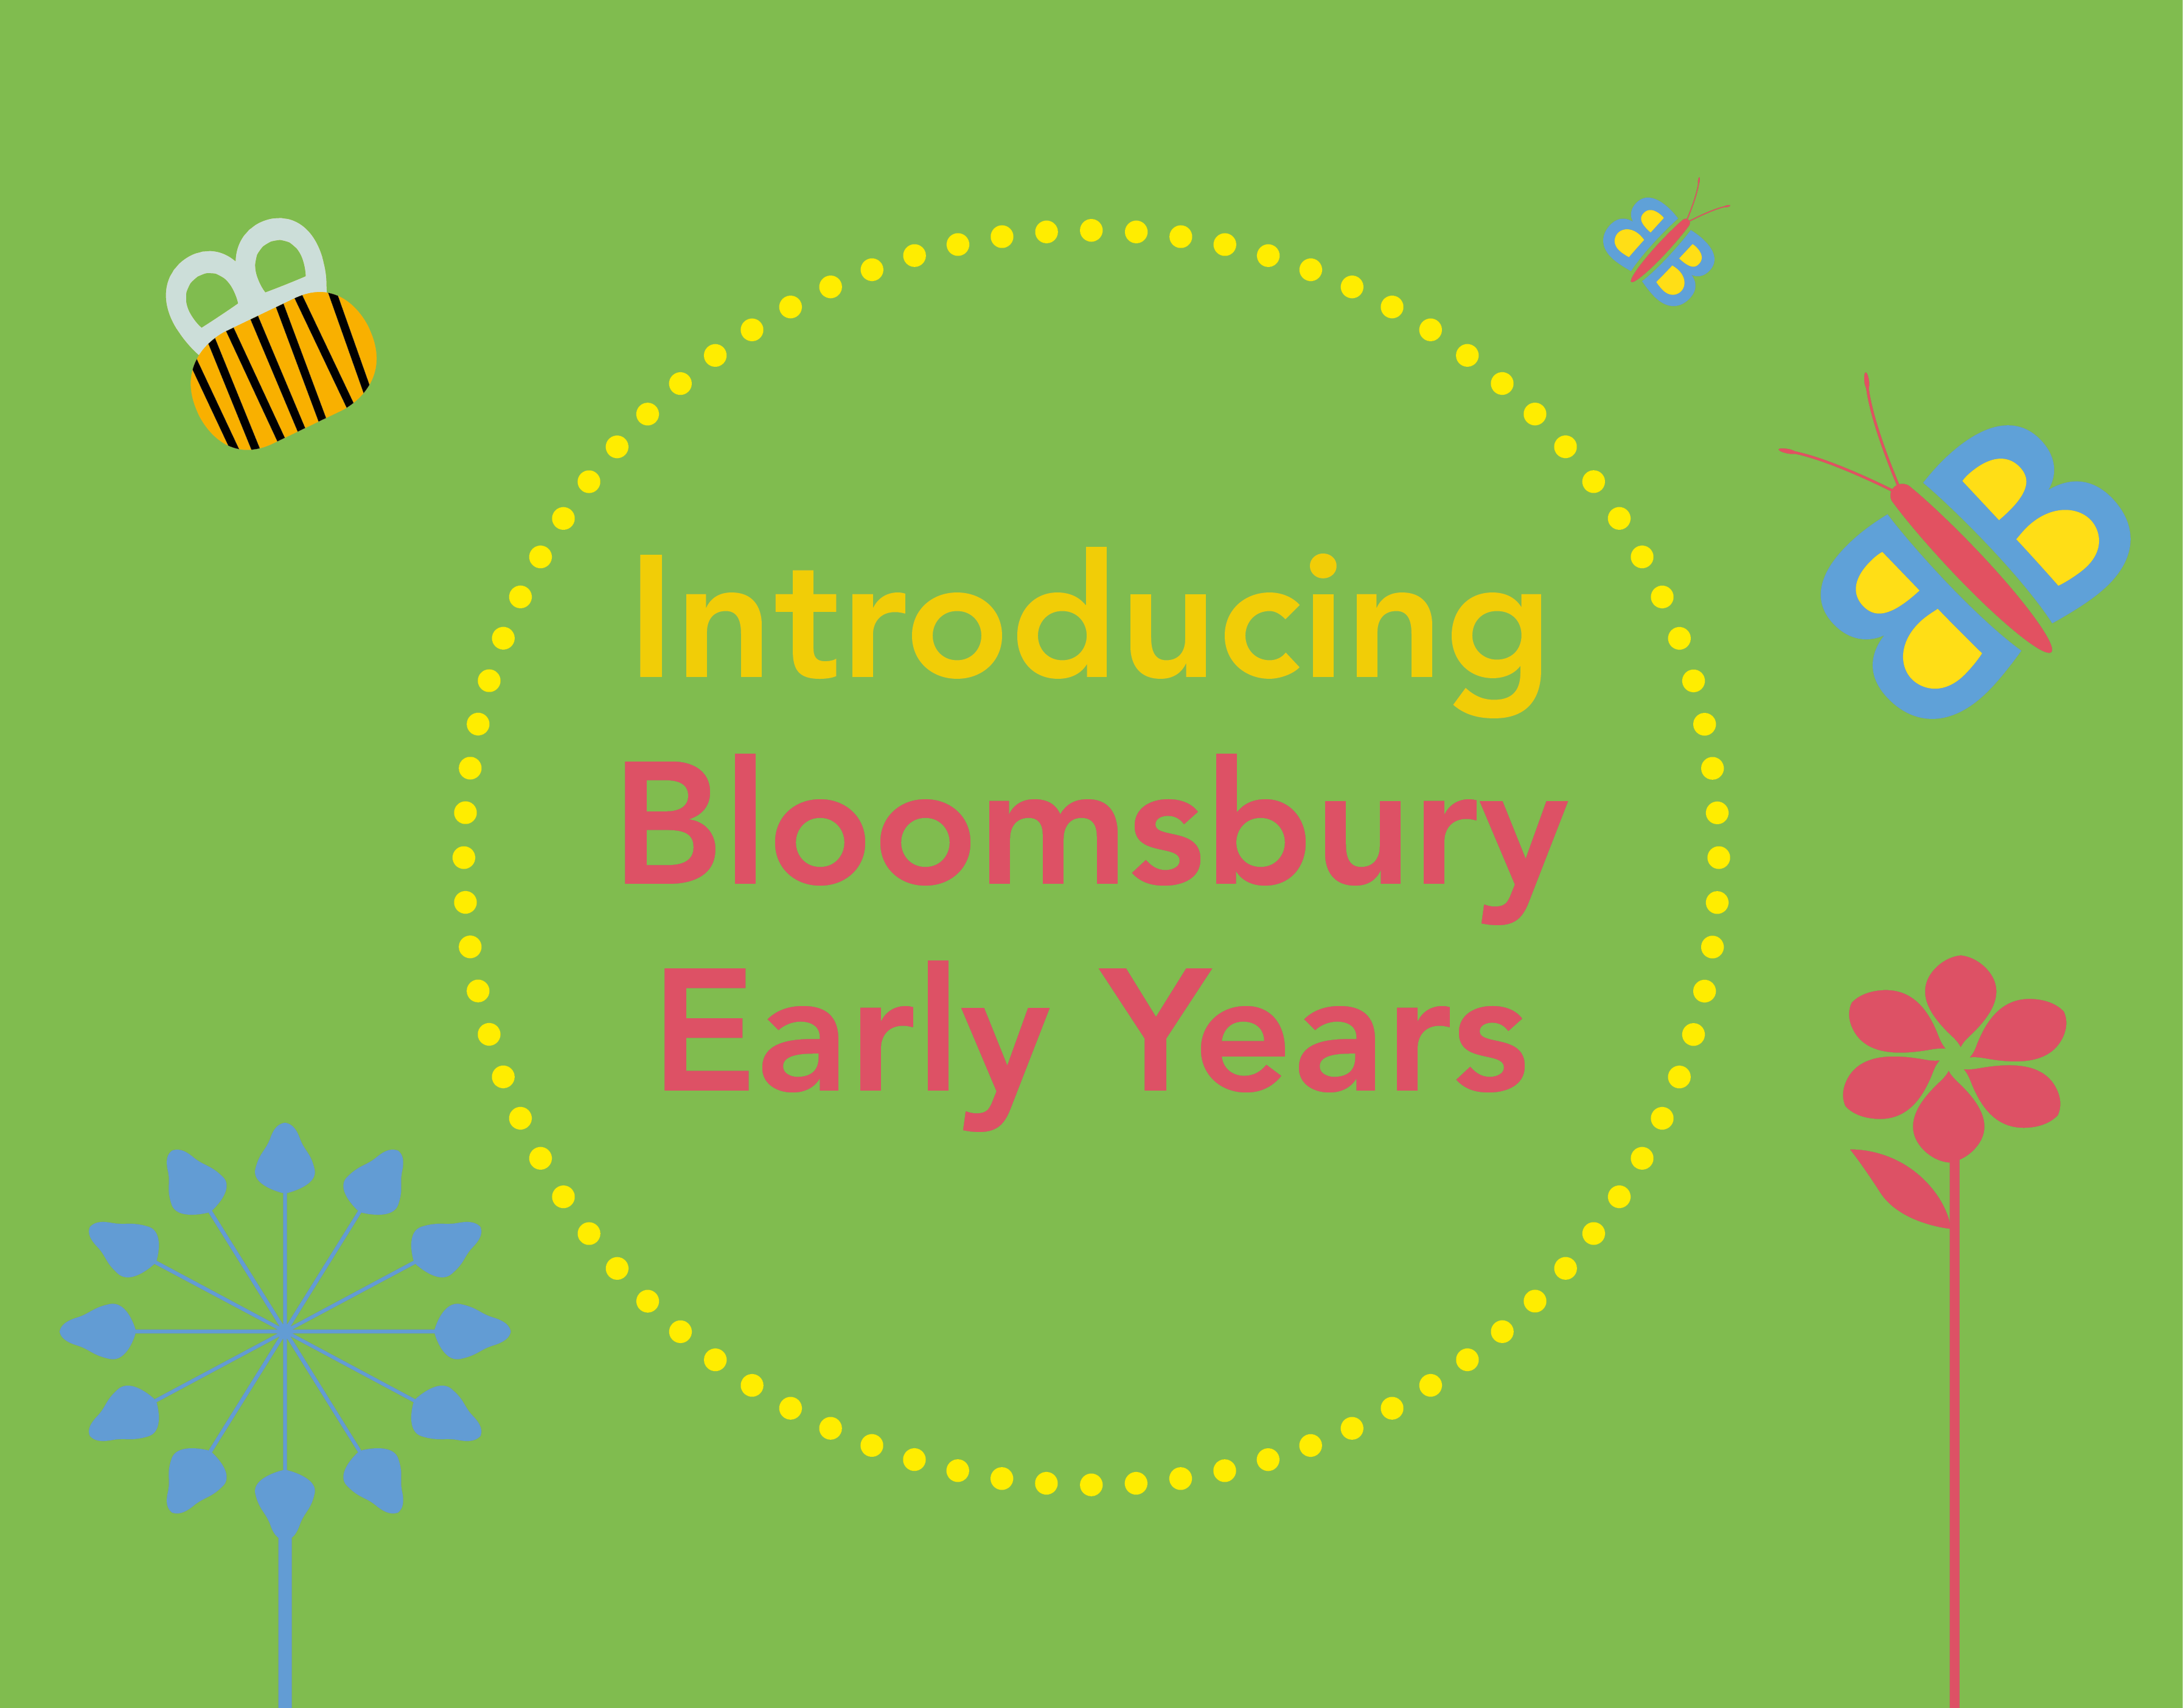 Introducing Bloomsbury Early Years